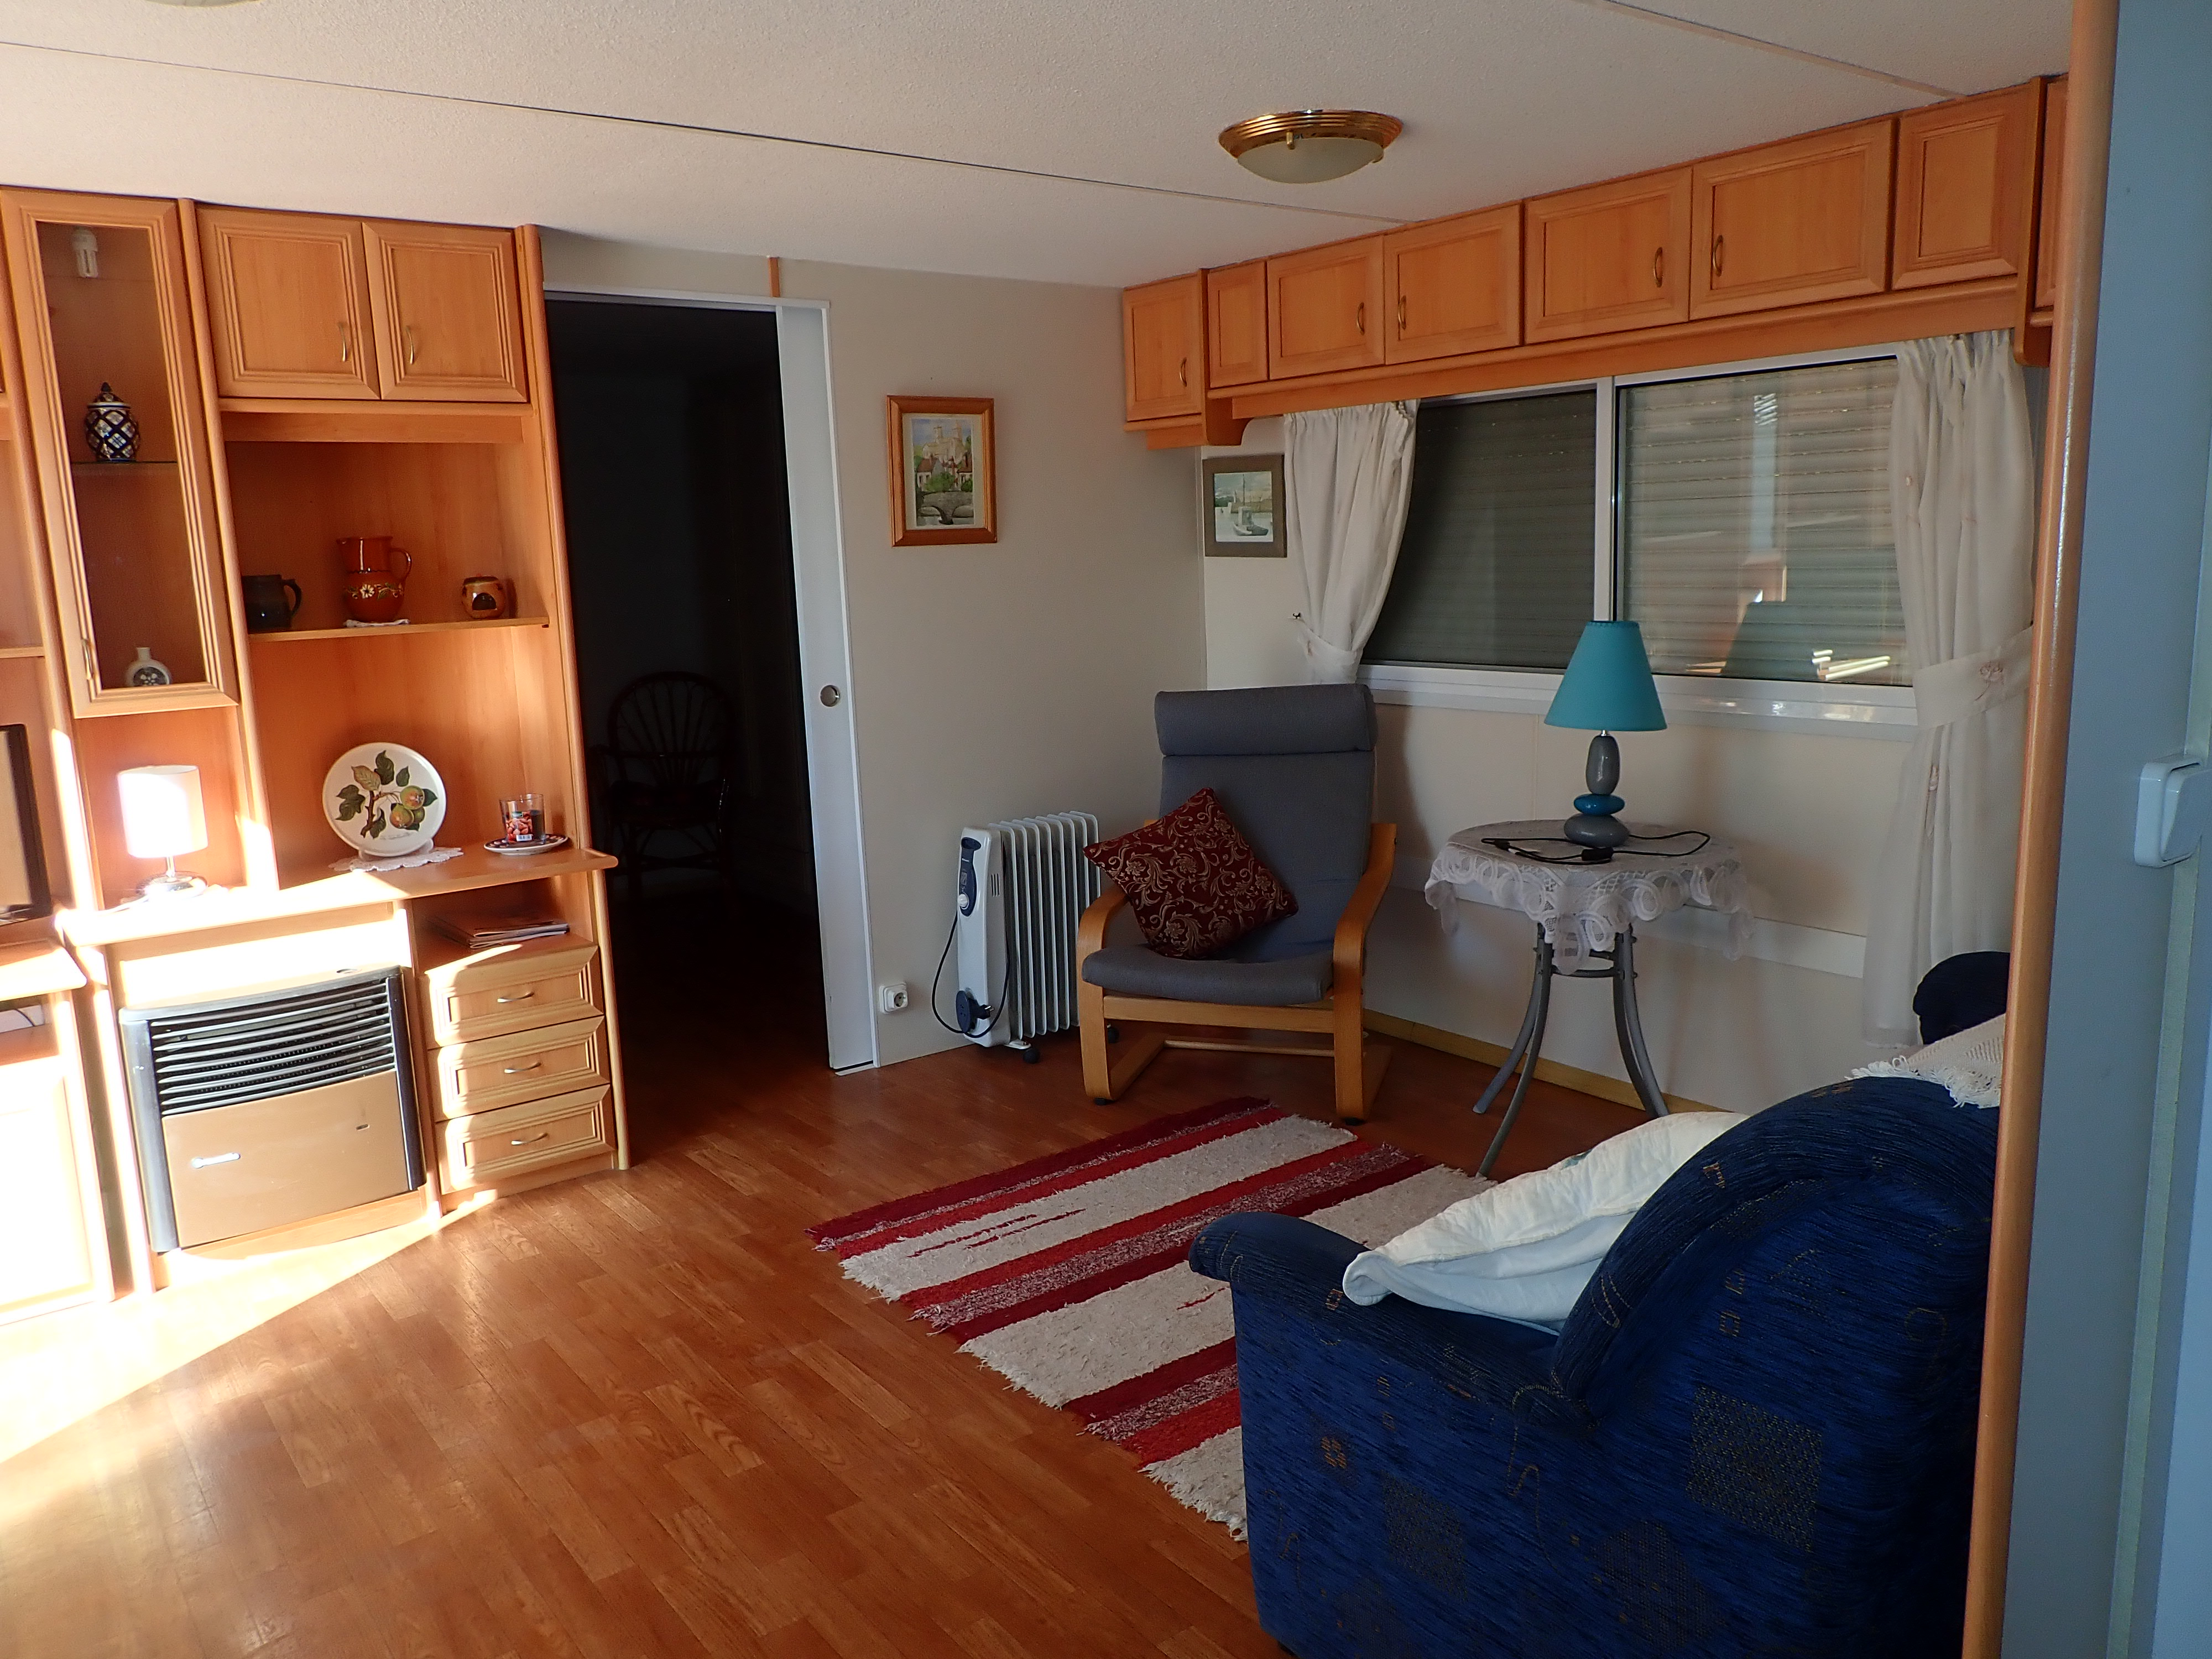 2 bed, 1 bath mobile home for sale in Las Bouganvillas